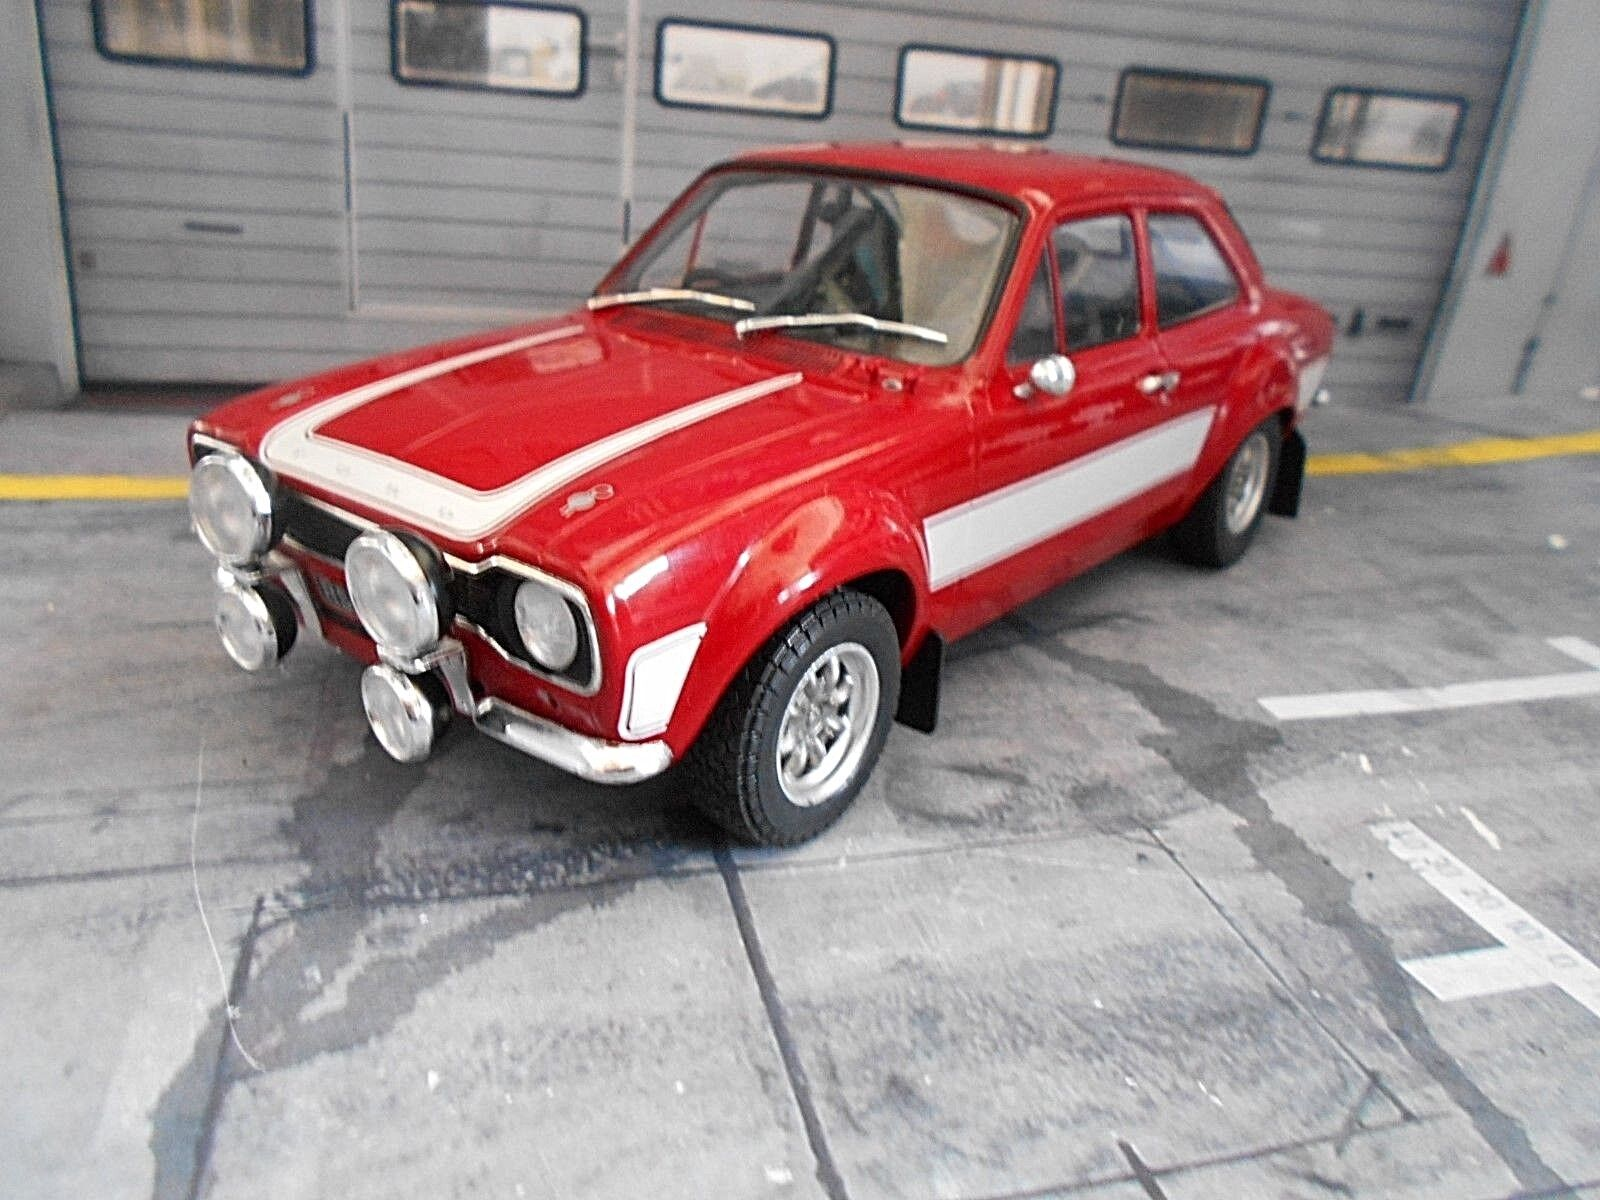 Ford Escort MkI RS 2000 RS2000 rouge blanc  1973 Triple 9 IXO Metal 1 18  réductions incroyables